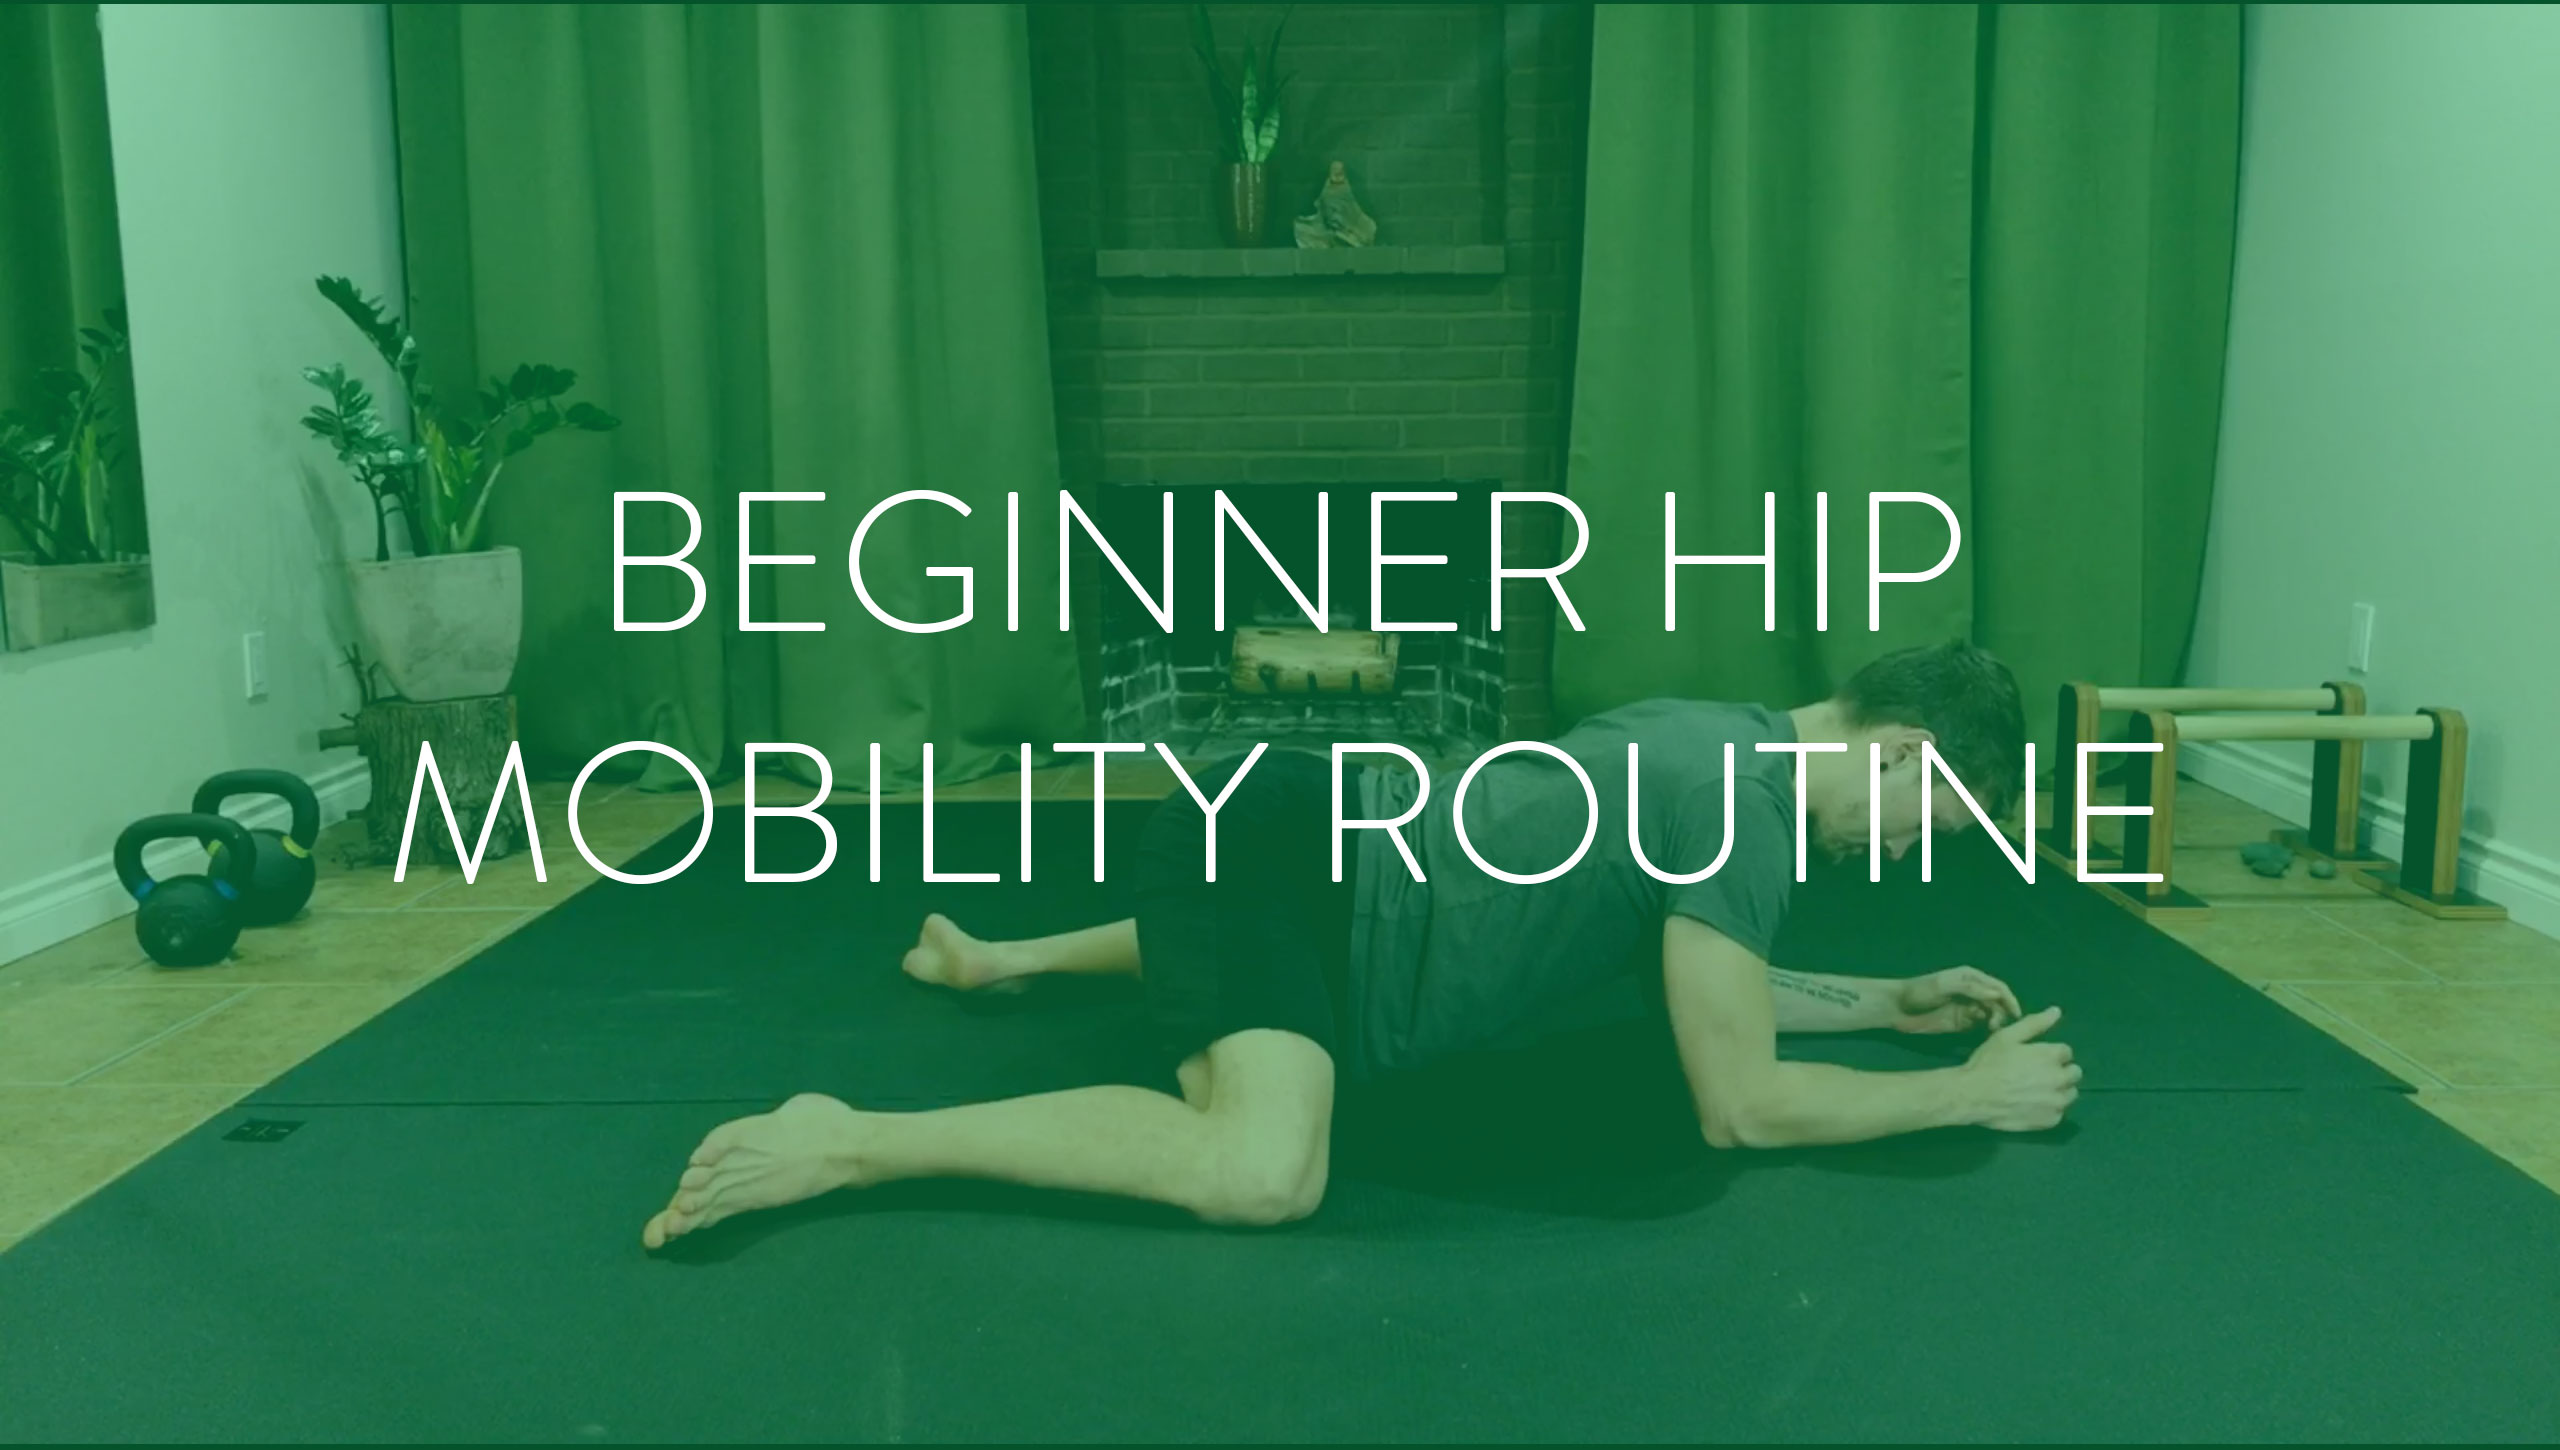 Stiff, Cranky Hips? Use This Daily Mobility Routine